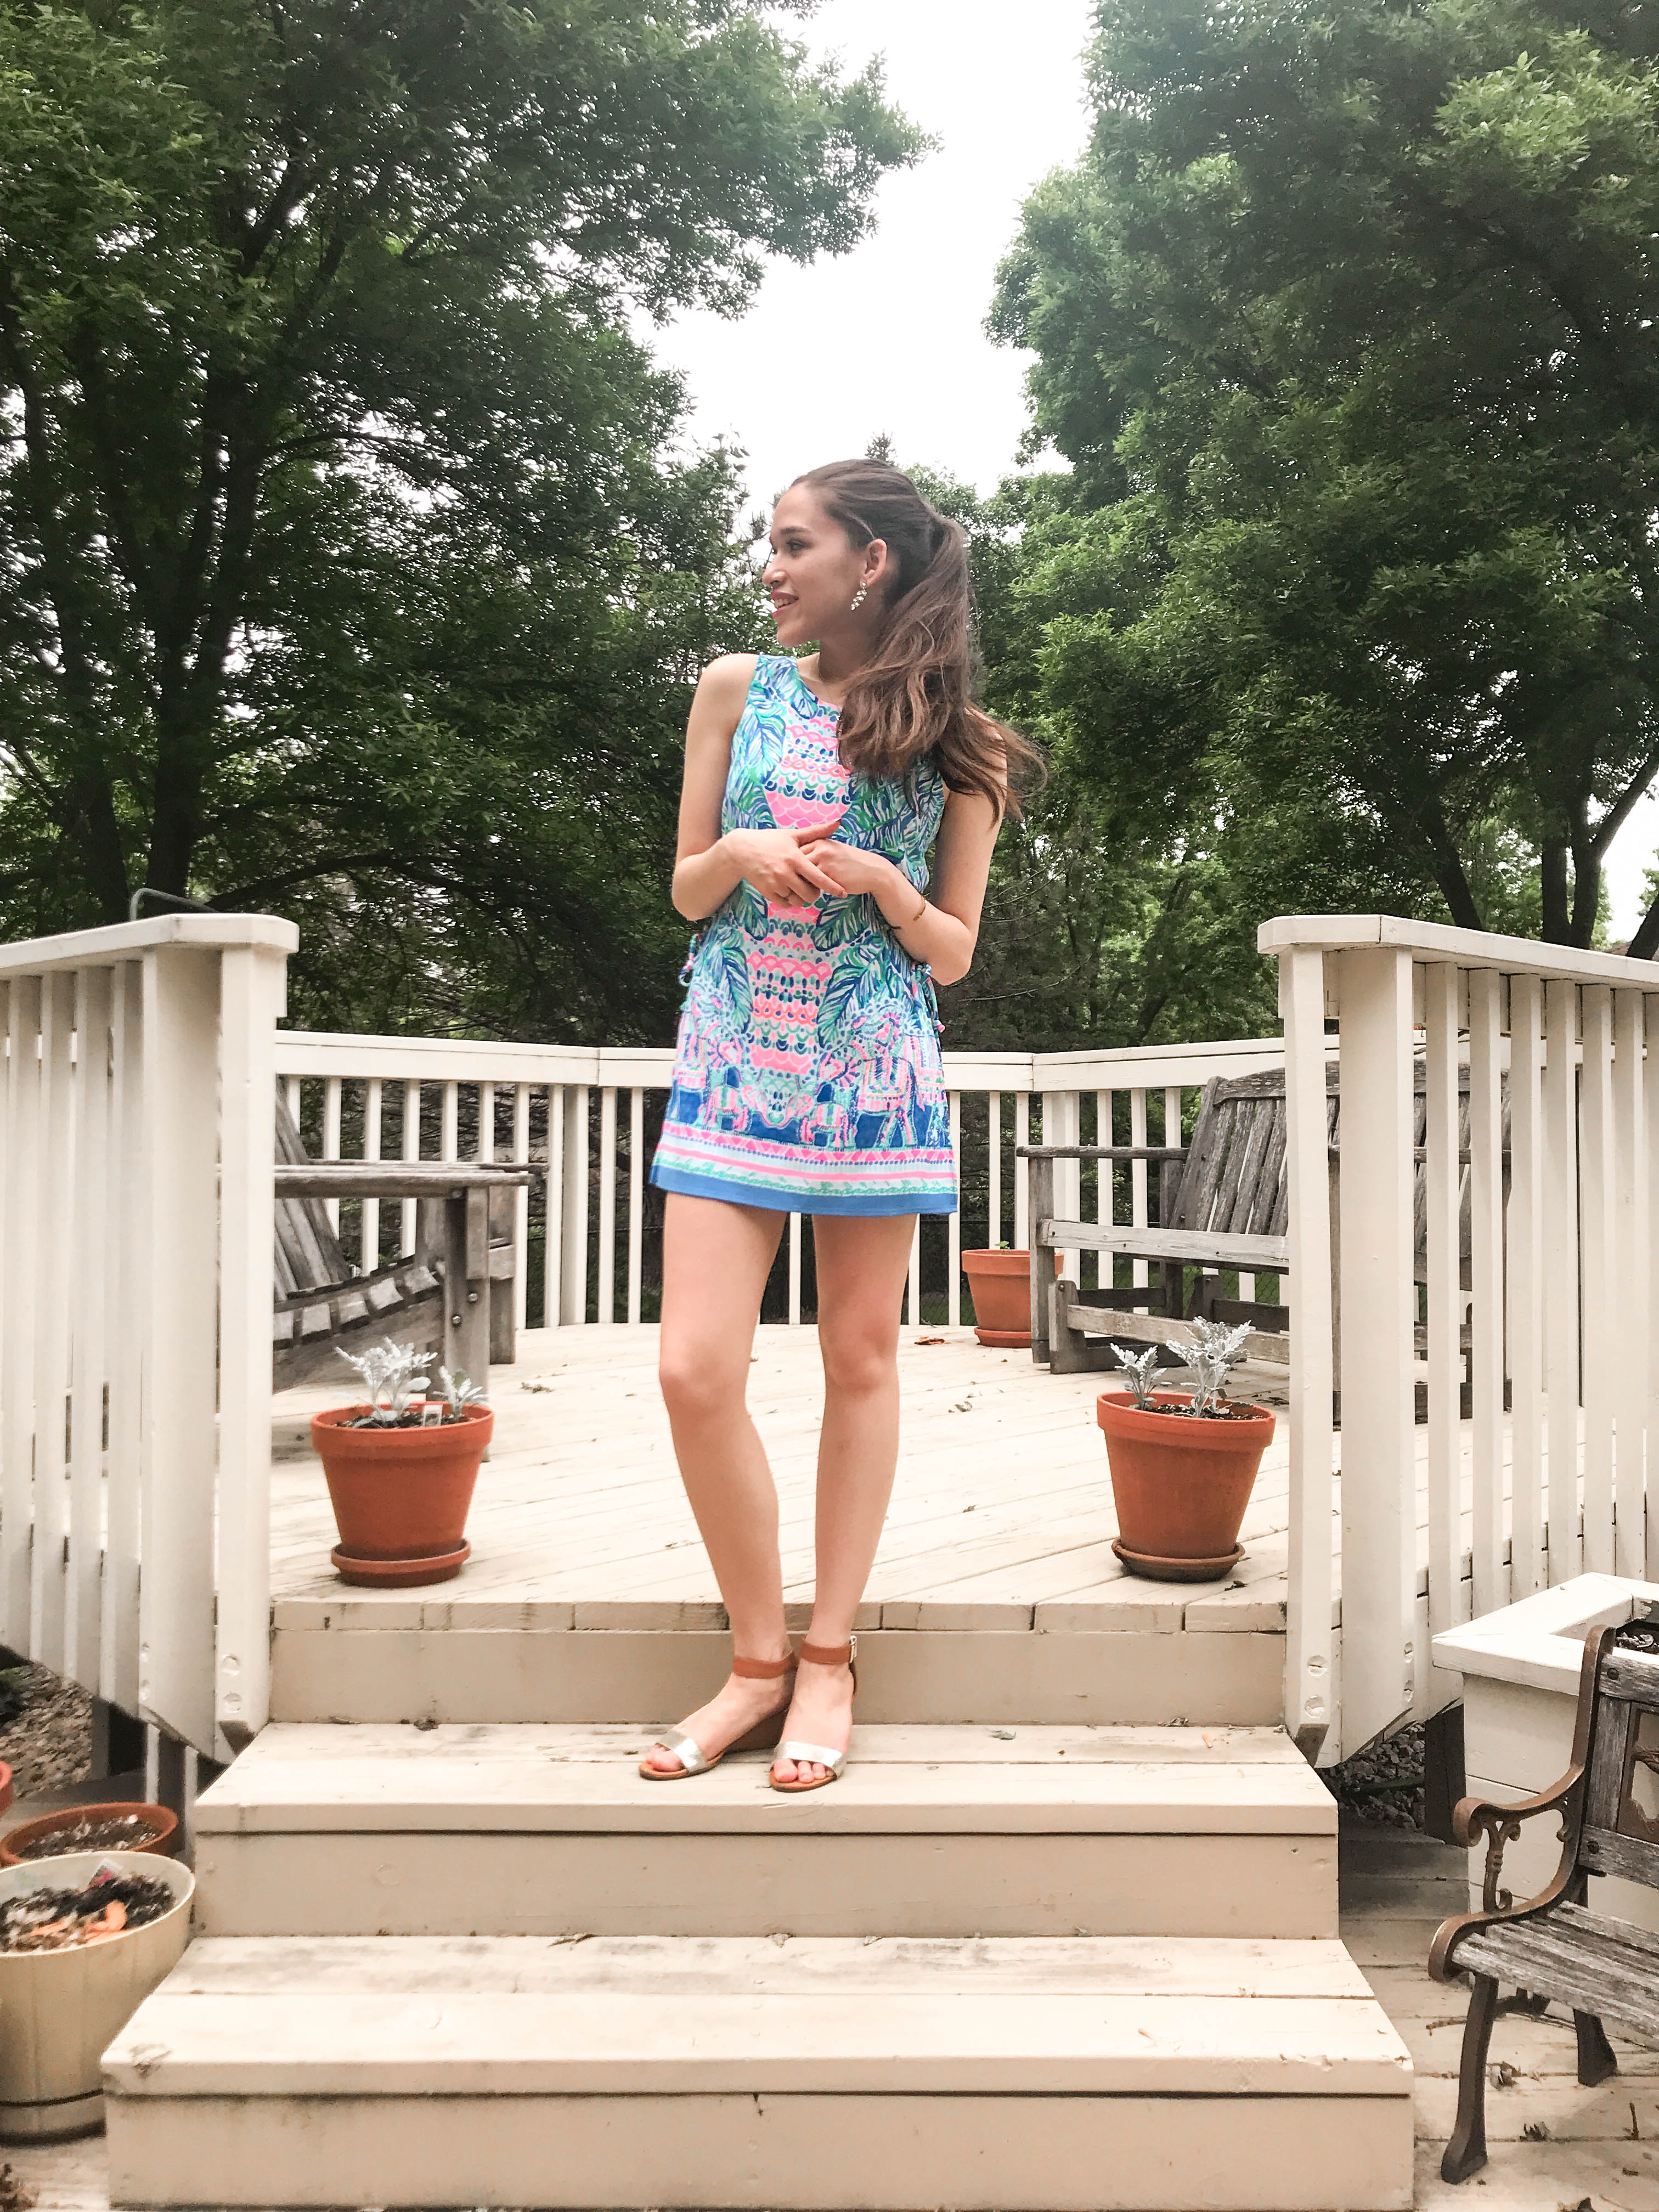 Lilly Pulitzer donna romper review feel the beat engineered preppy girl style womens outfit inspiratoin minnesota mn teen teenager girl with long straight brown hair in wrapped ponytail on white beige deck in the summer fashion gold wedge shoe shoes